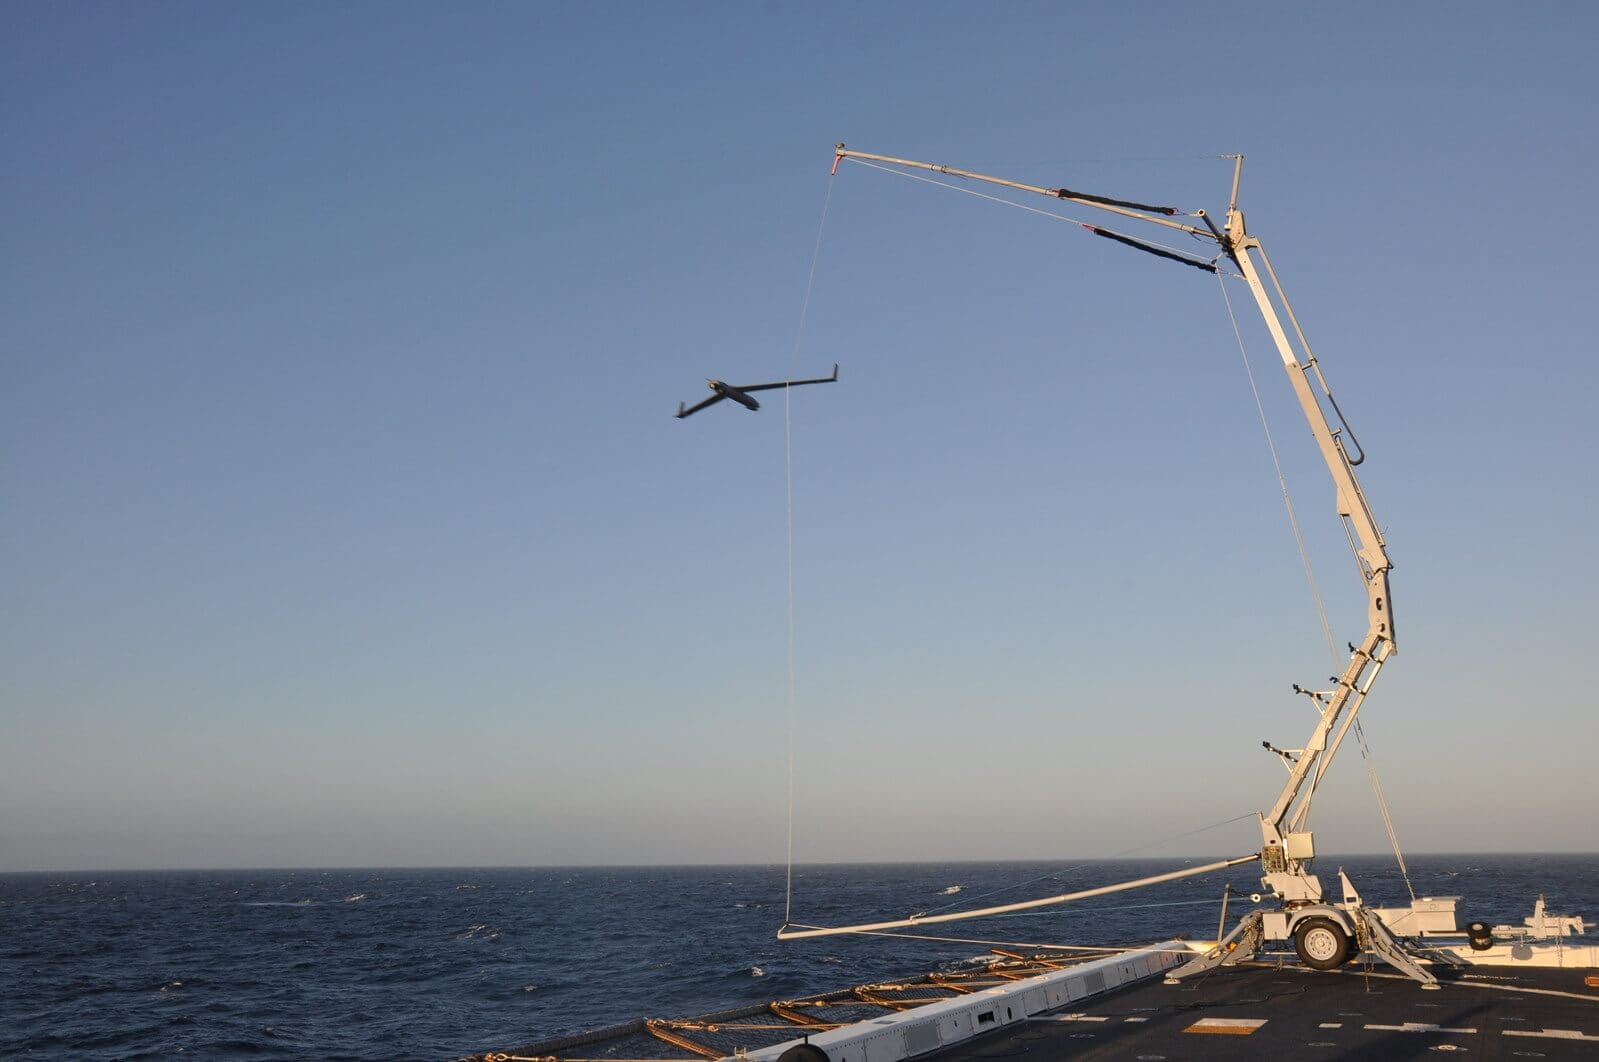 Insitu_ScanEagle NYC Museum Launches Dedicated Drone Exhibit